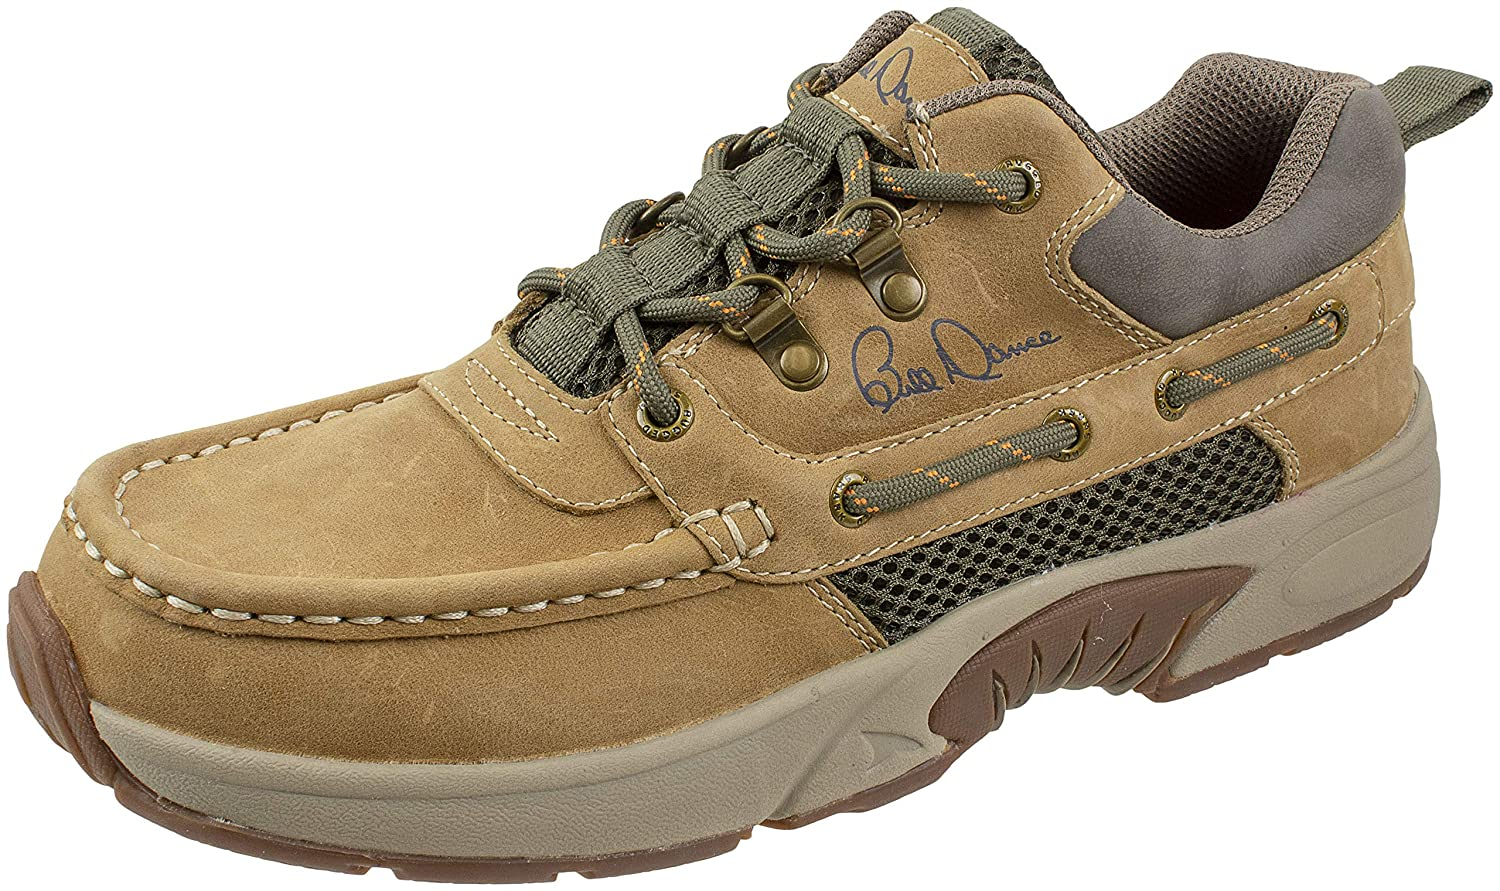 Rugged Shark Bill Dance Pro Fishing Boat Shoe,Professional Sport Fishing and Outdoors,Mens Size 8 to 13